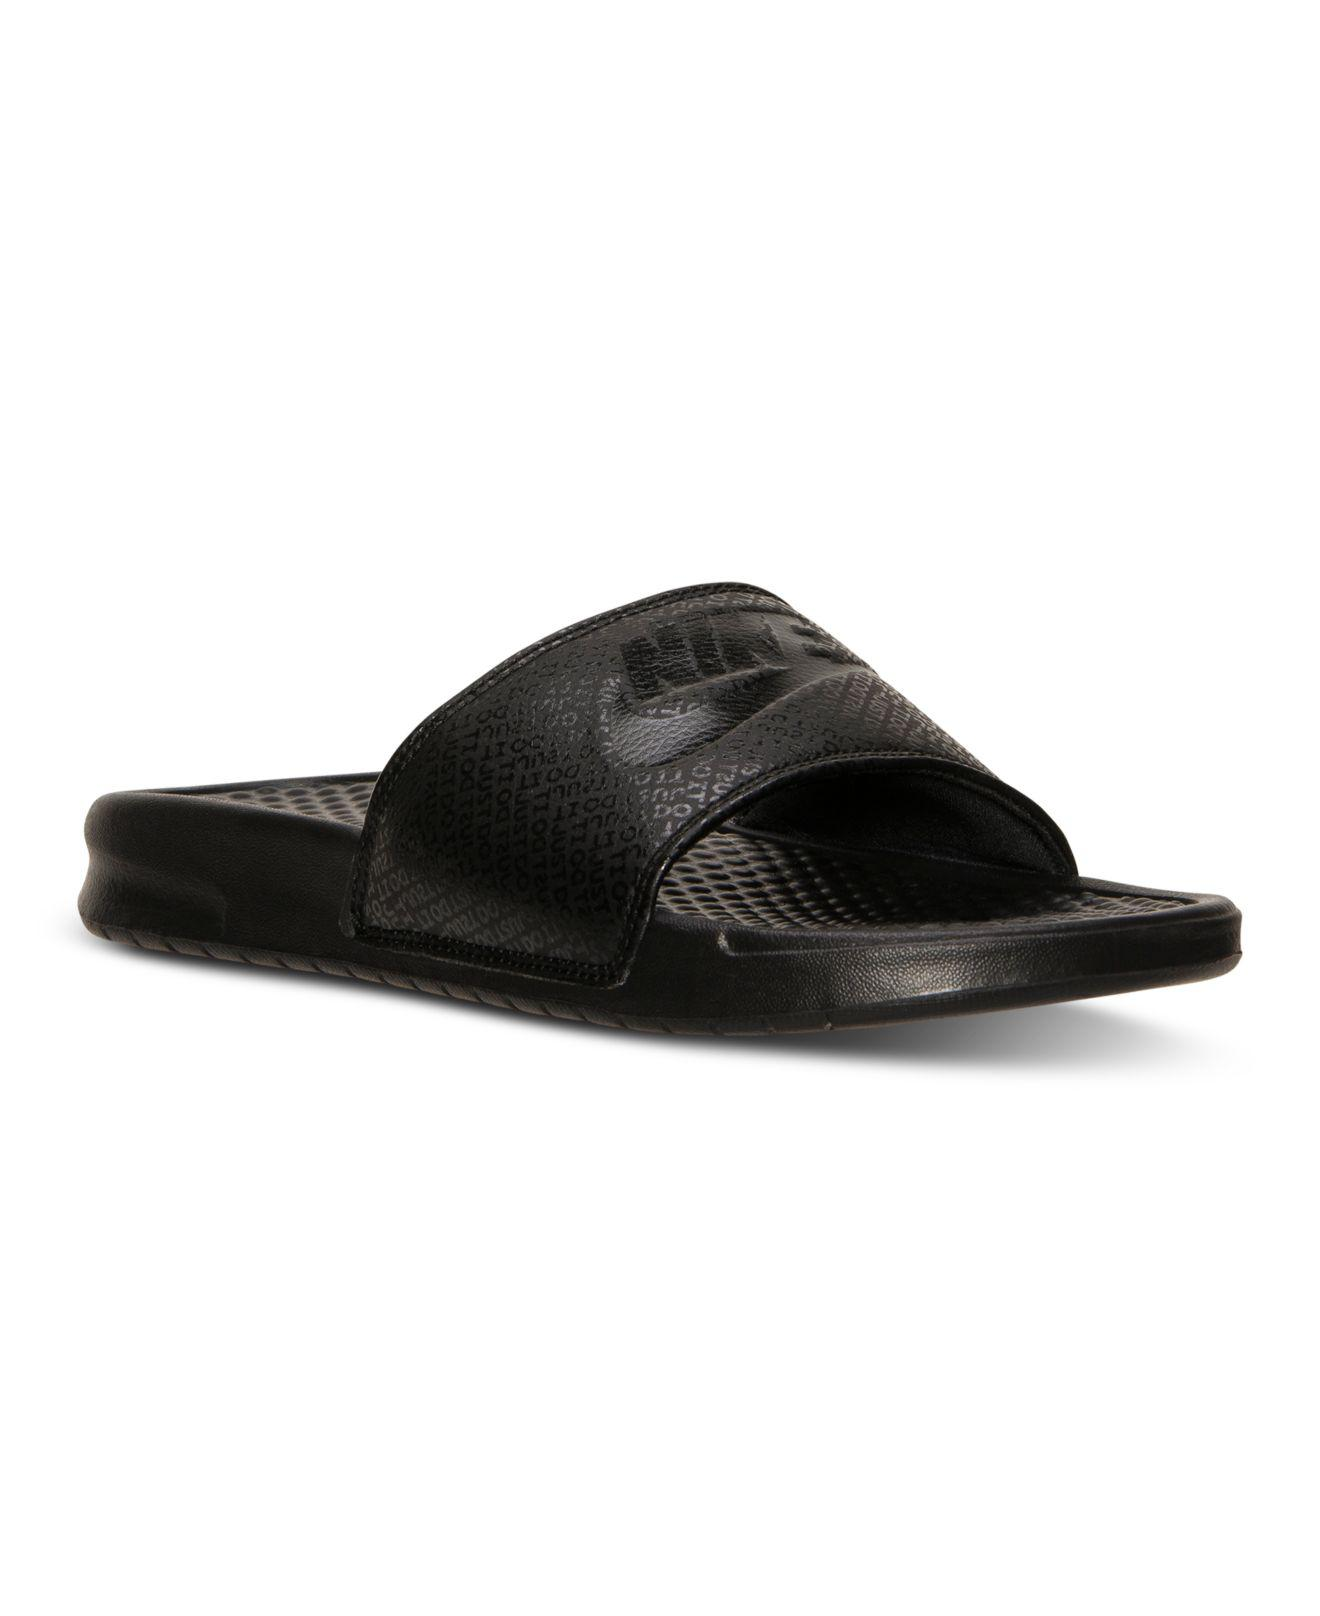 6047bfa4ece318 Lyst - Nike Men s Benassi Jdi Slide Sandals From Finish Line in ...